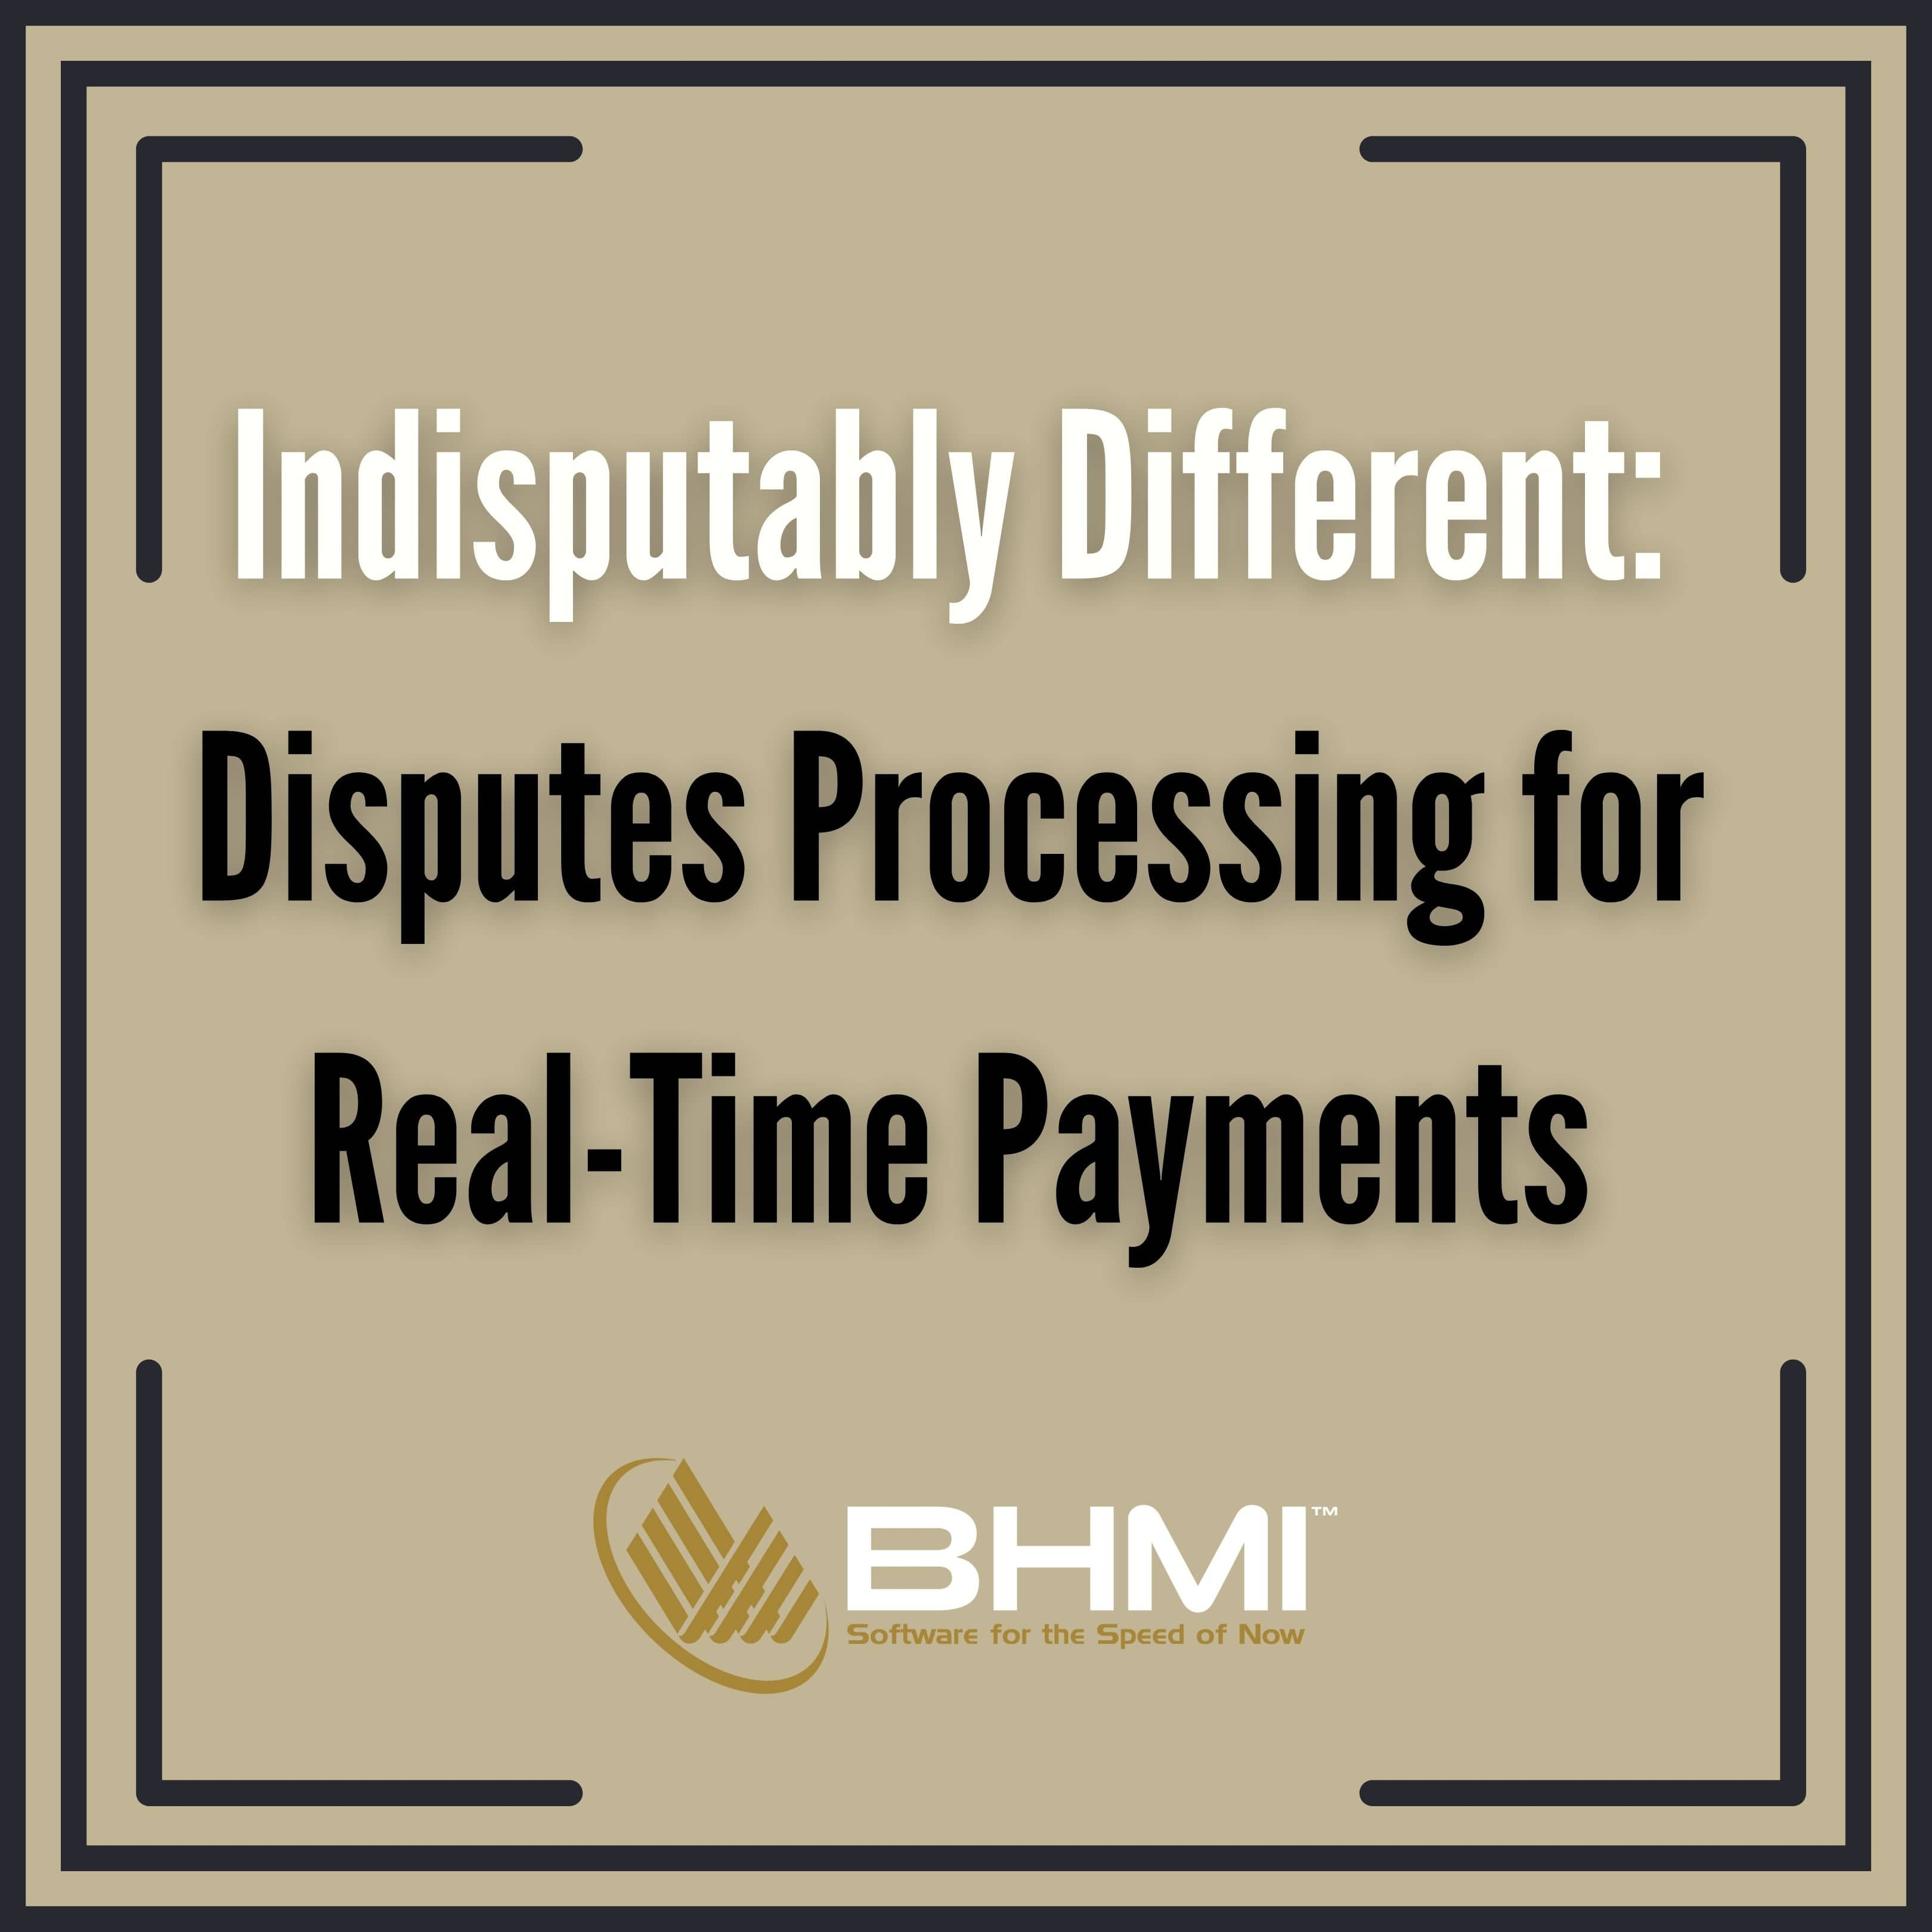 Indisputably Different: Disputes Processing for Real-Time Payments